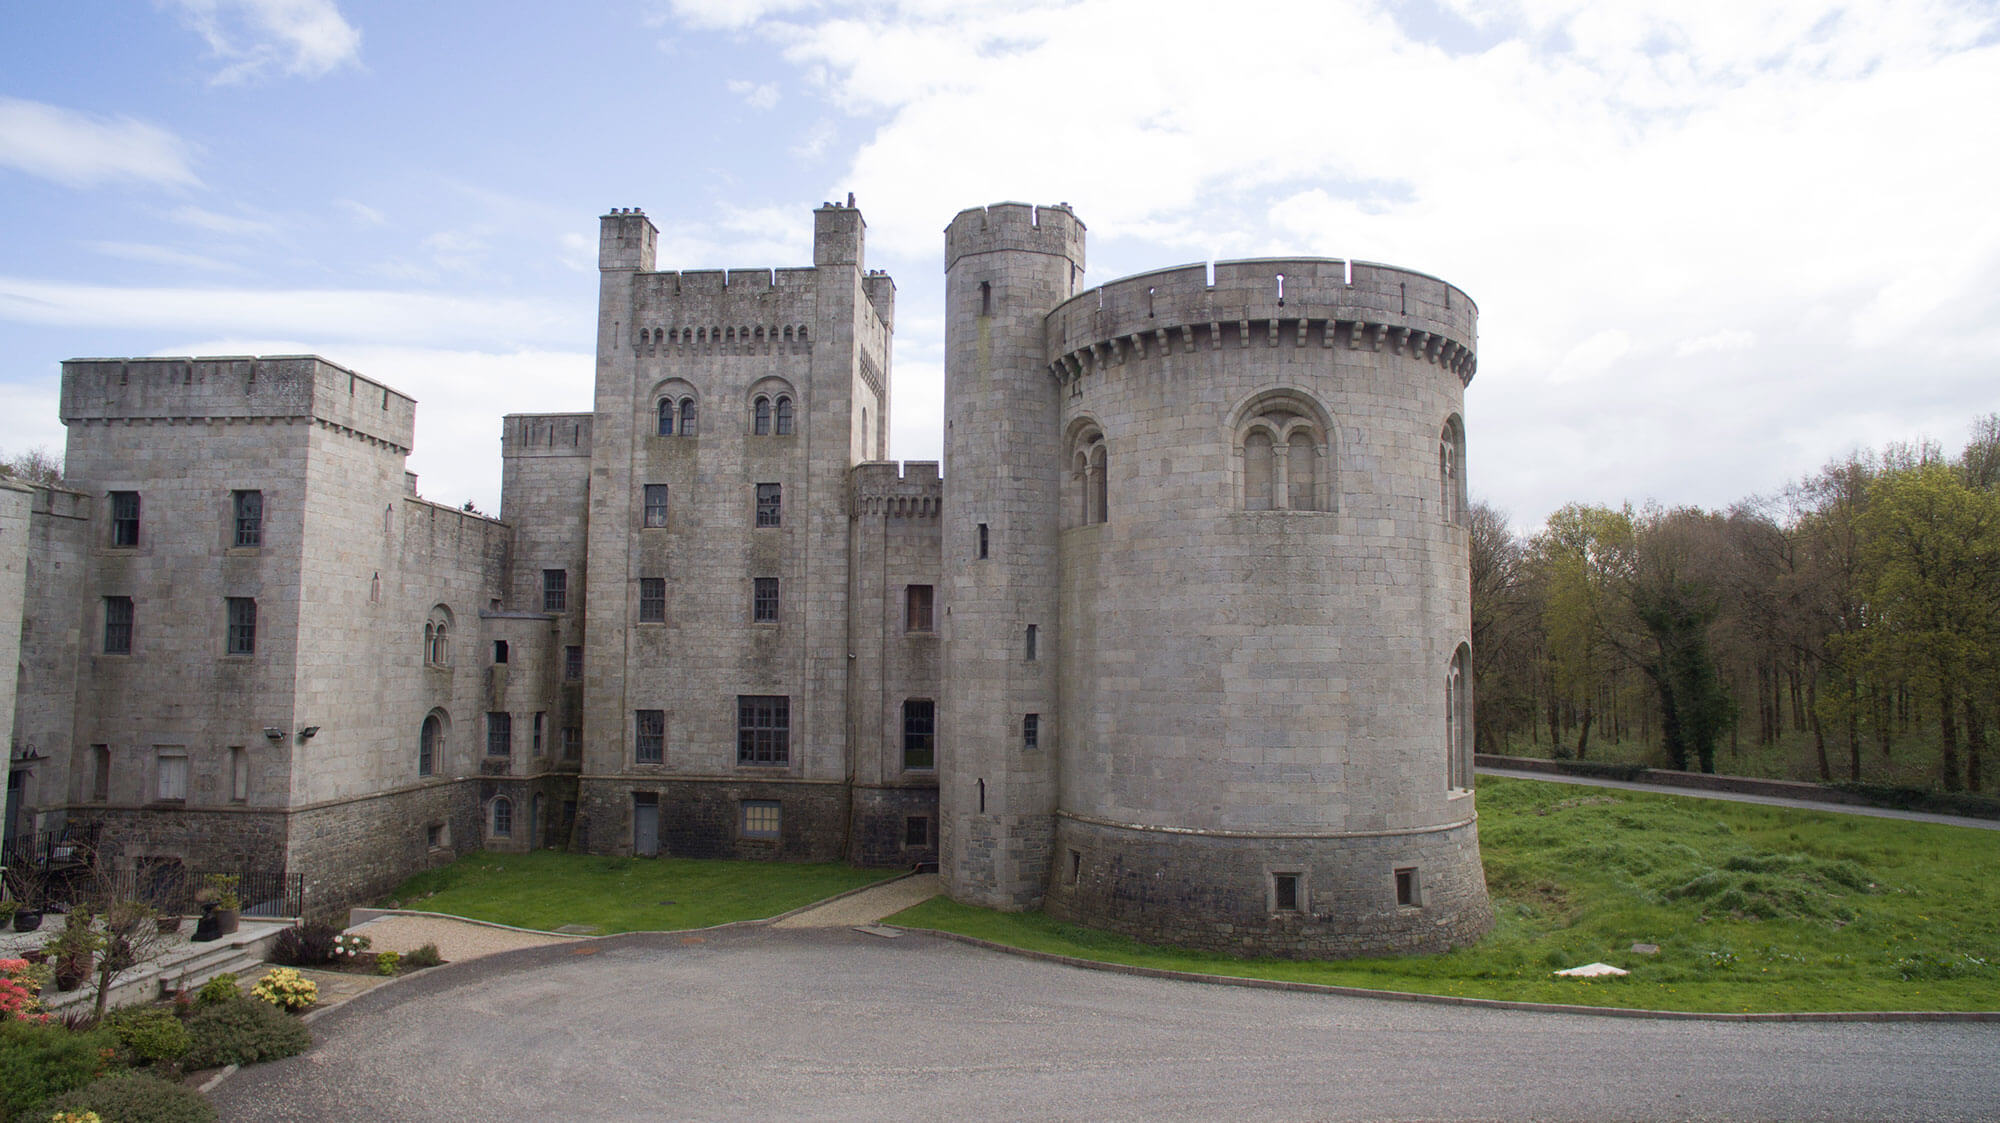 game of thrones castle sale - Castelo de Game of Thrones pode ser seu por menos de U$1 milhão